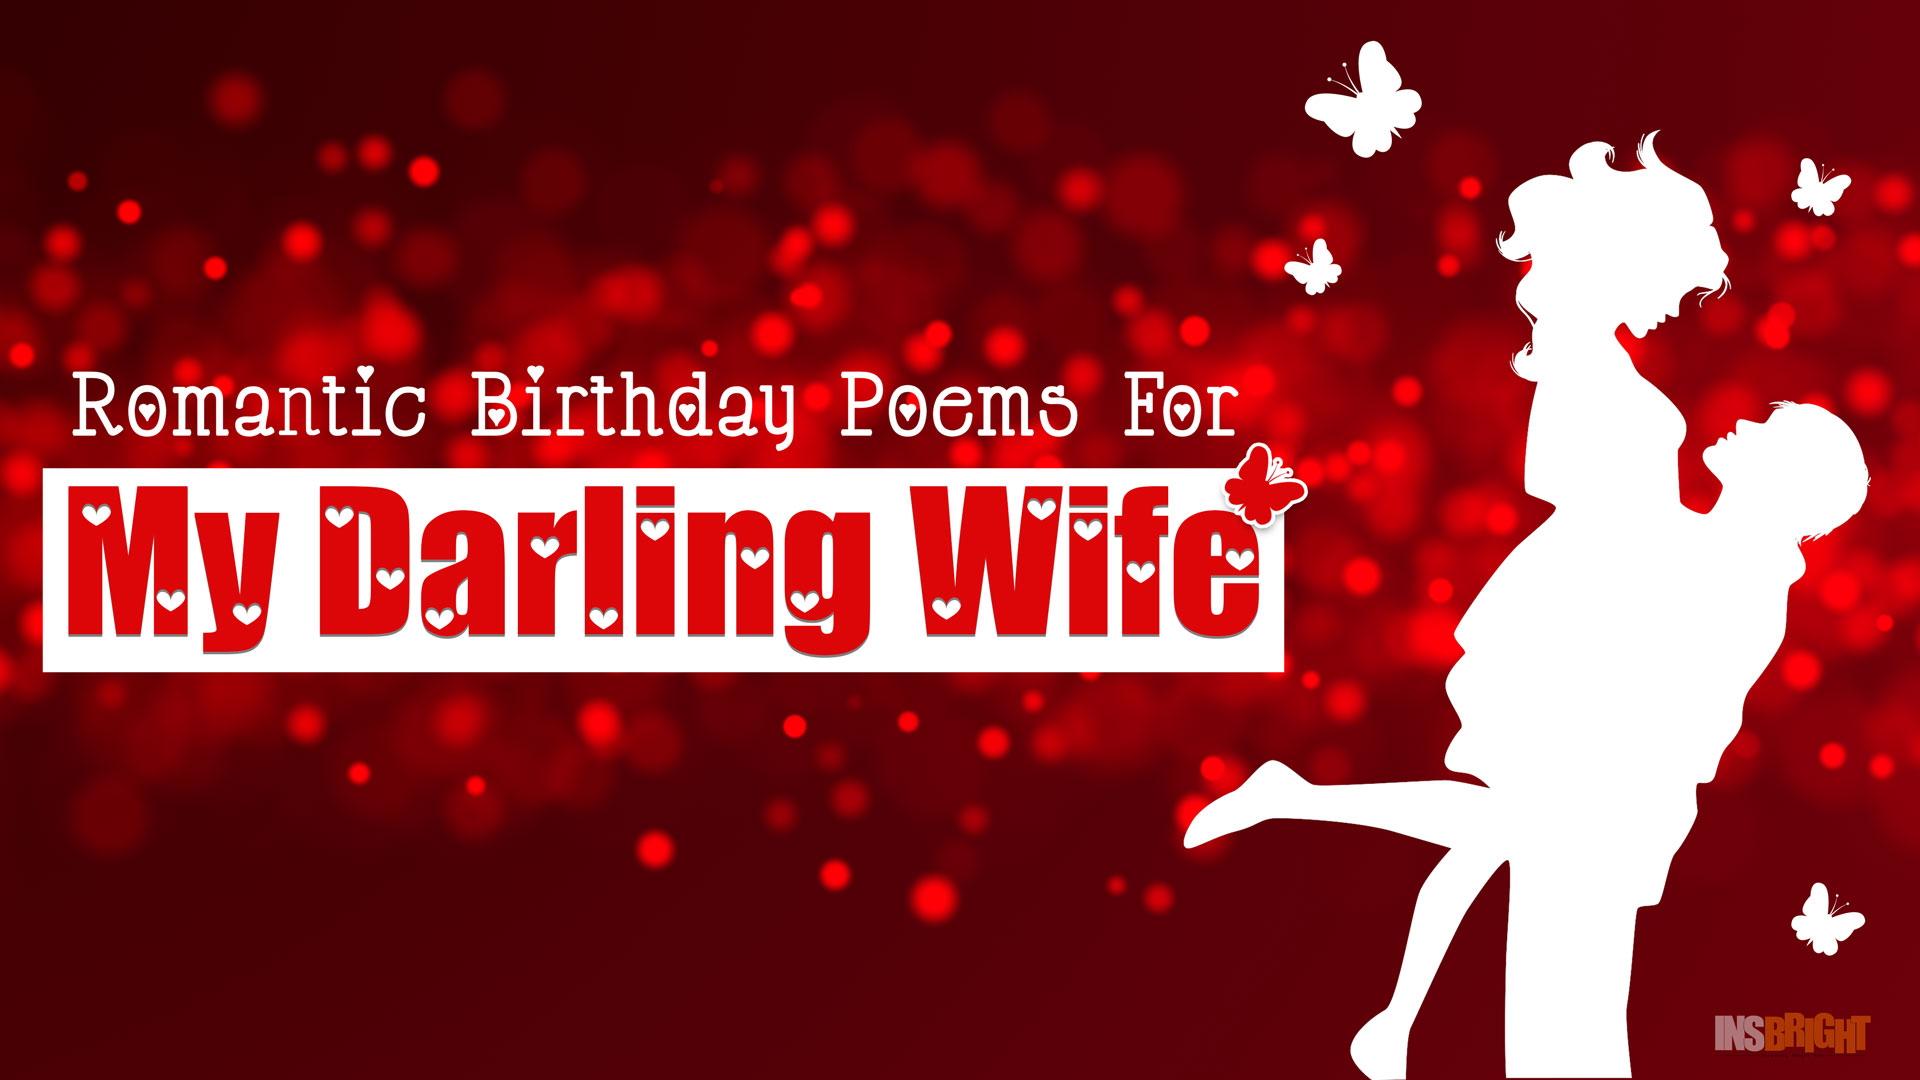 birthday wallpaper for wife ; birthday-poetry-for-wife-insbright